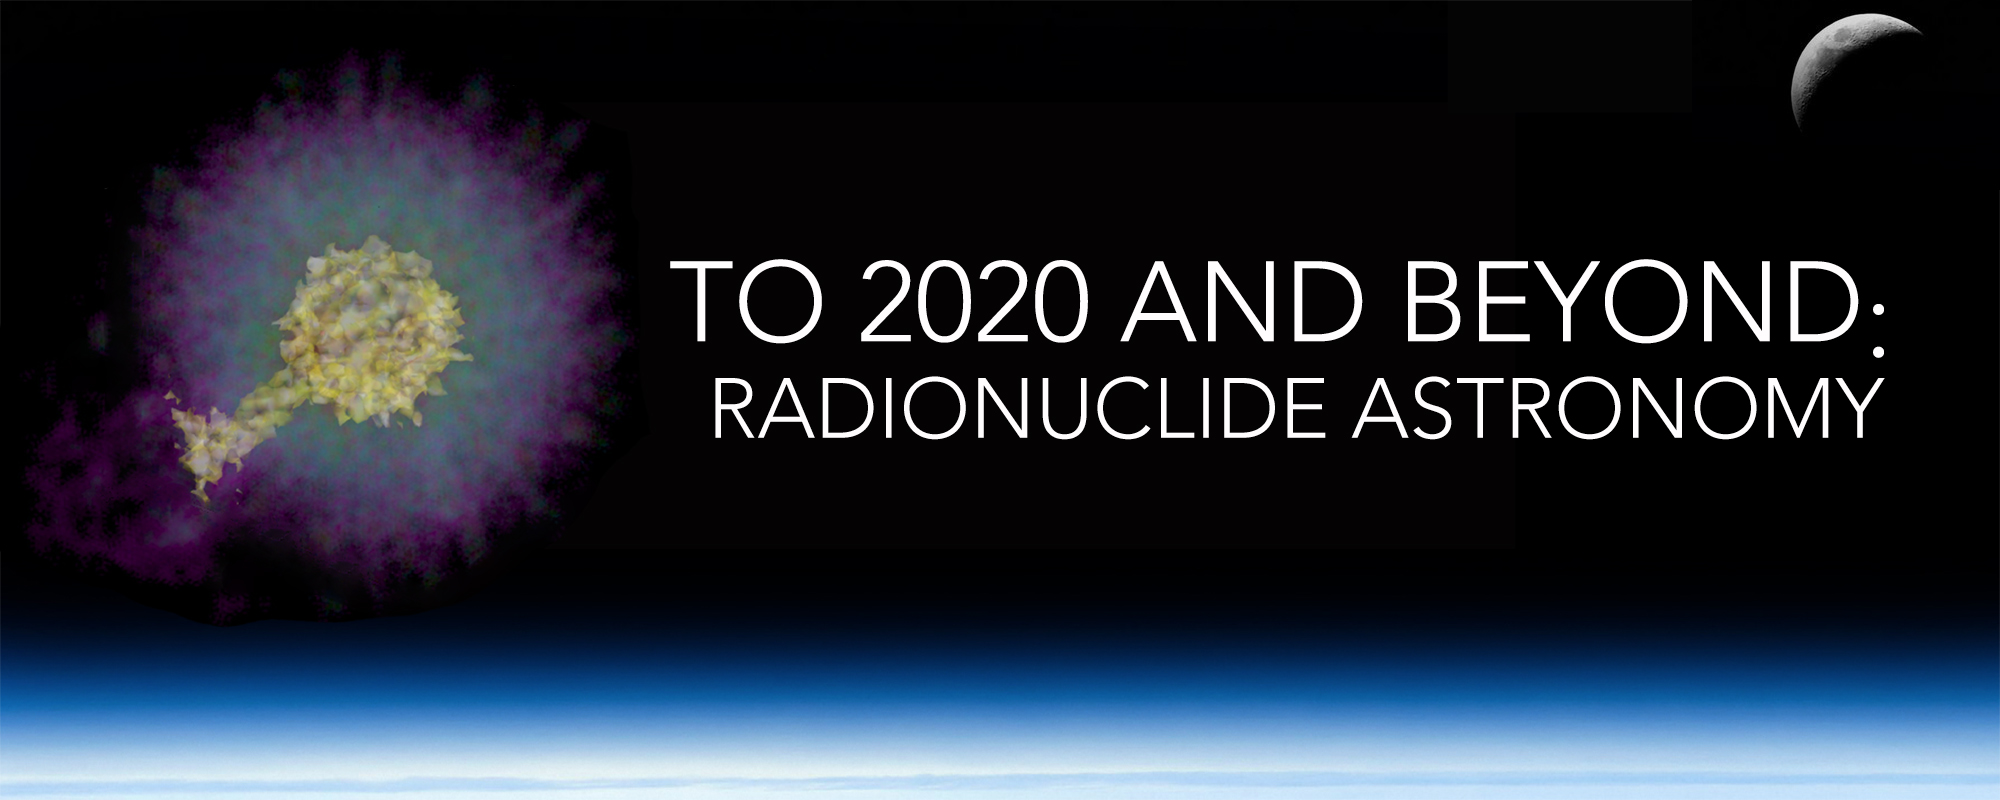 Radionuclide Astronomy in the 2020's and Beyond (RA2020)